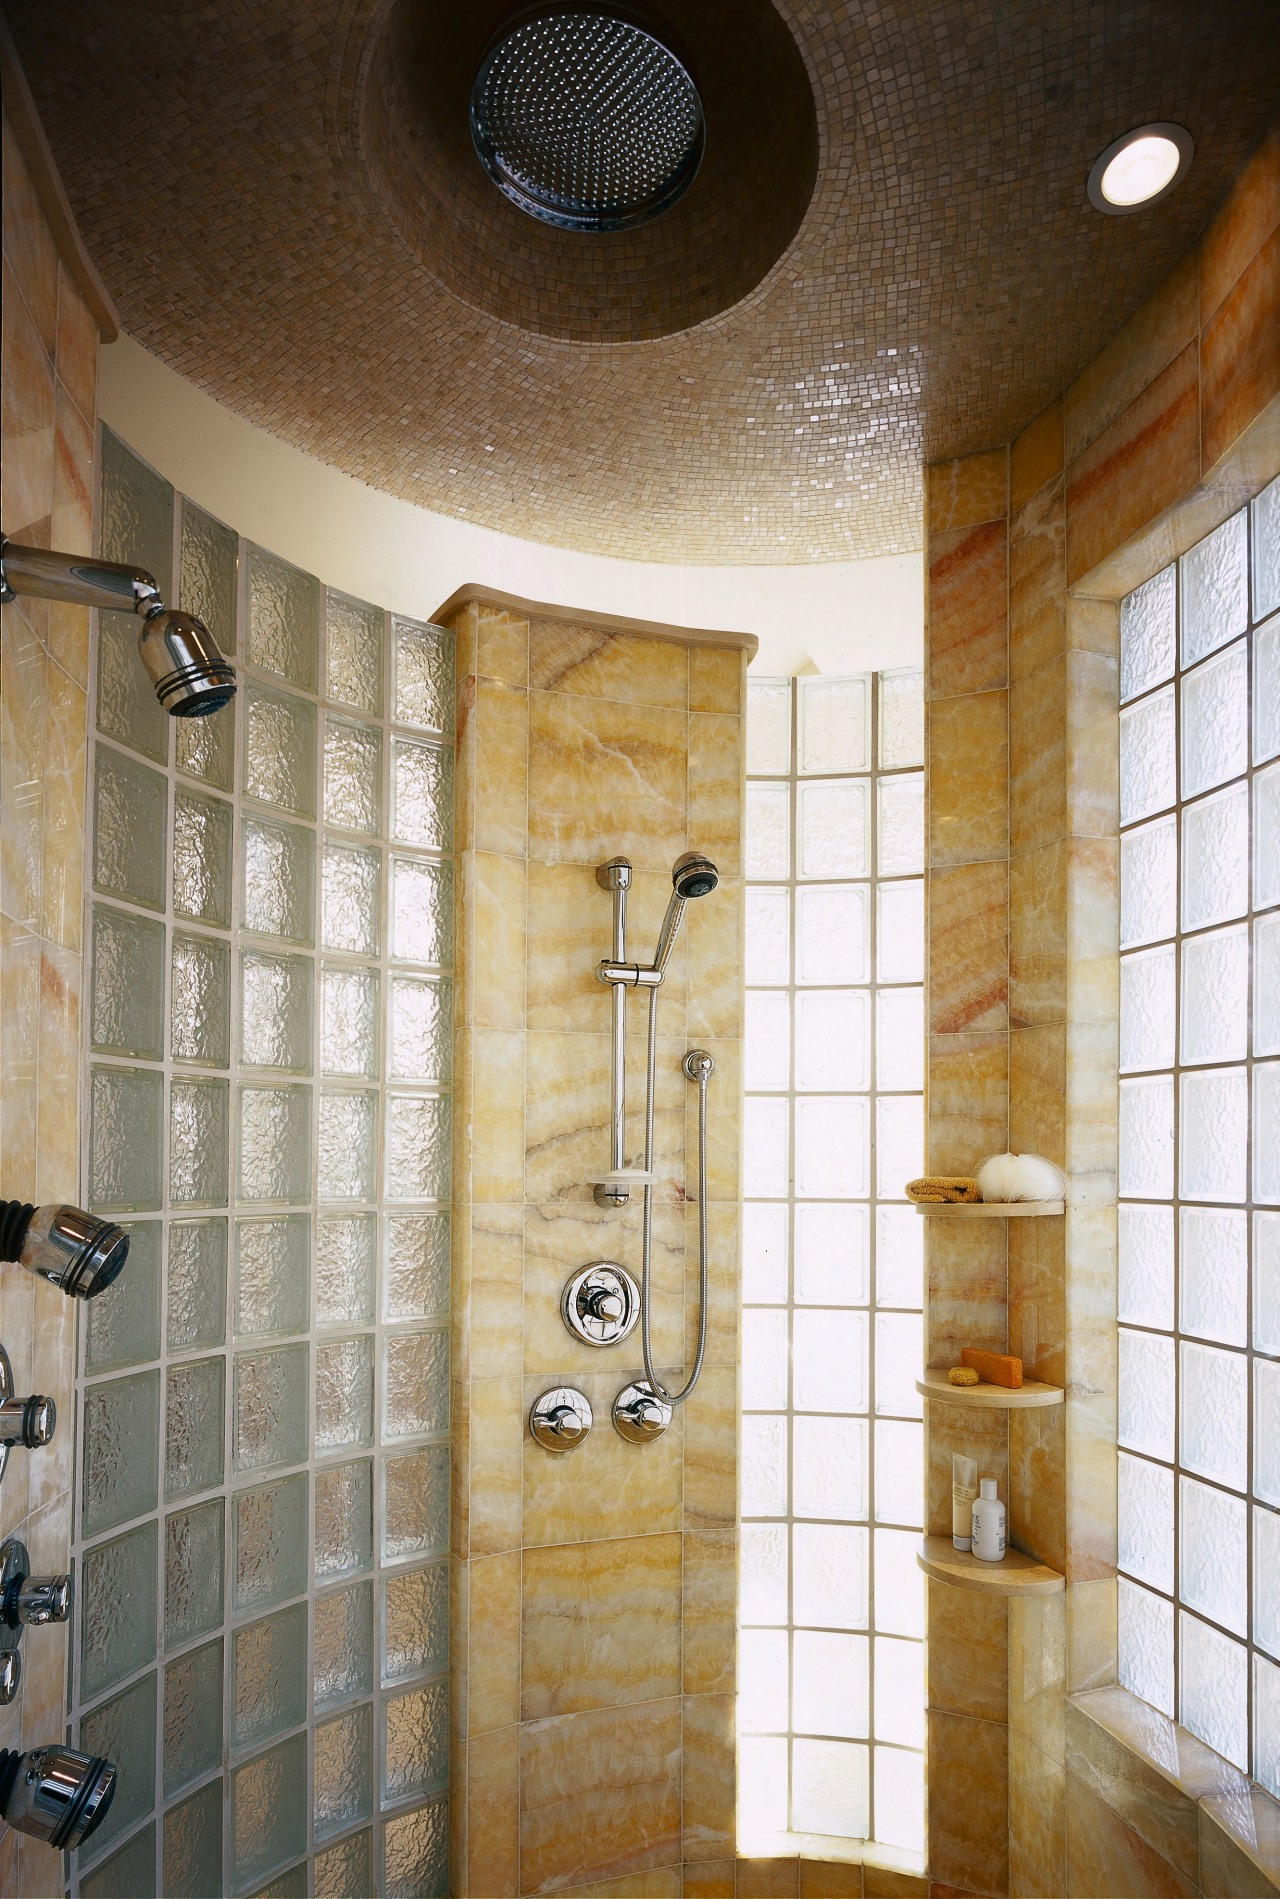 A view of the shower, glass tiled walls, bathroom, ceiling, floor, flooring, interior design, plumbing fixture, room, tile, wall, brown, gray